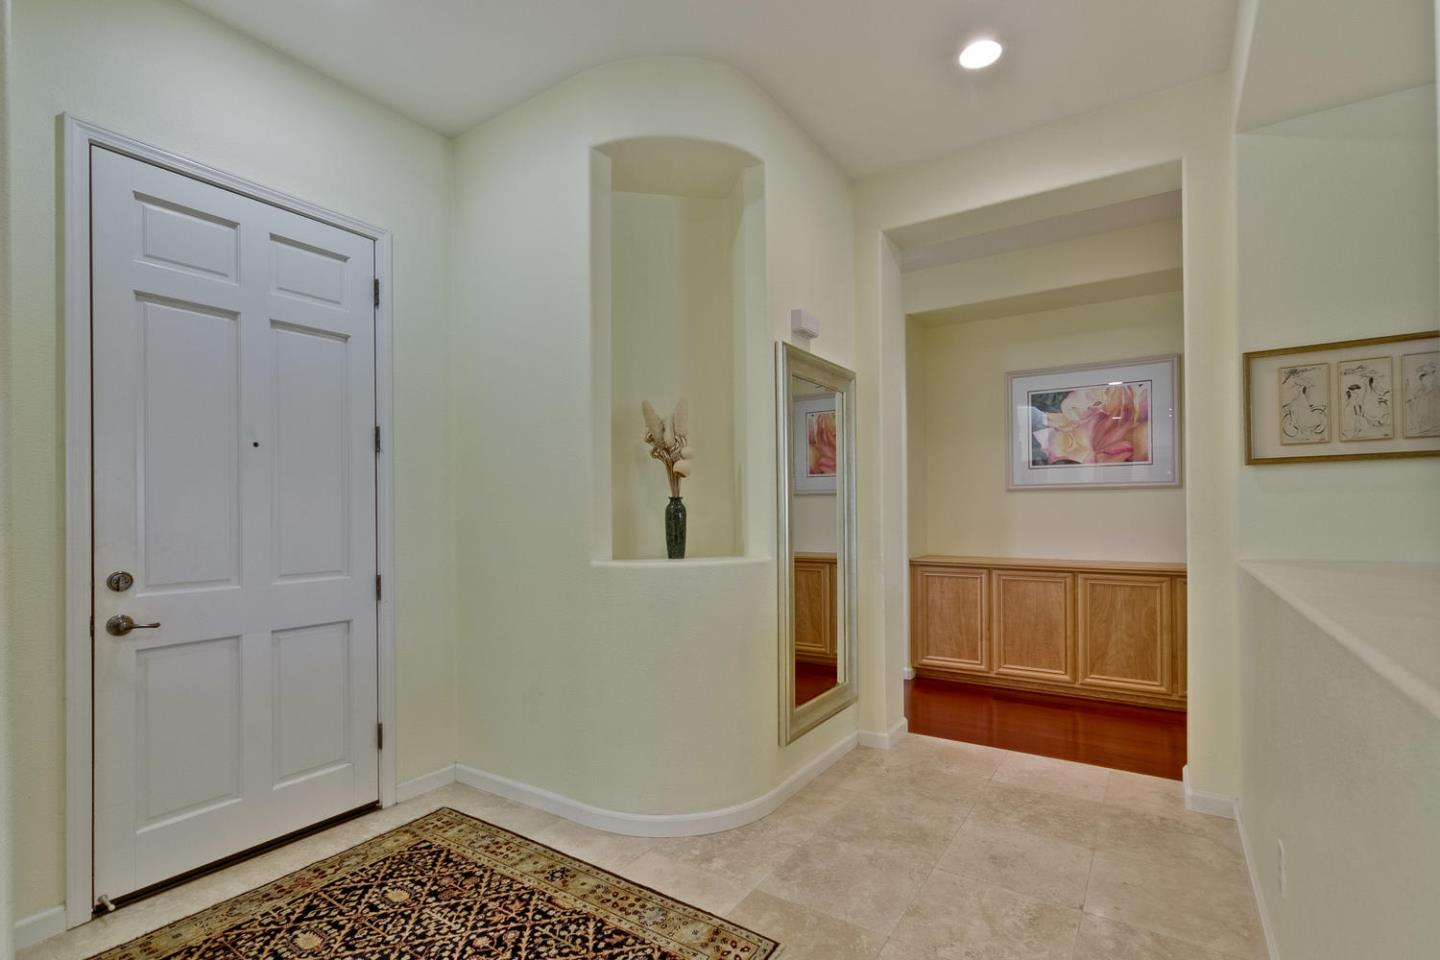 Additional photo for property listing at 17710 Aston Court  Morgan Hill, カリフォルニア 95037 アメリカ合衆国